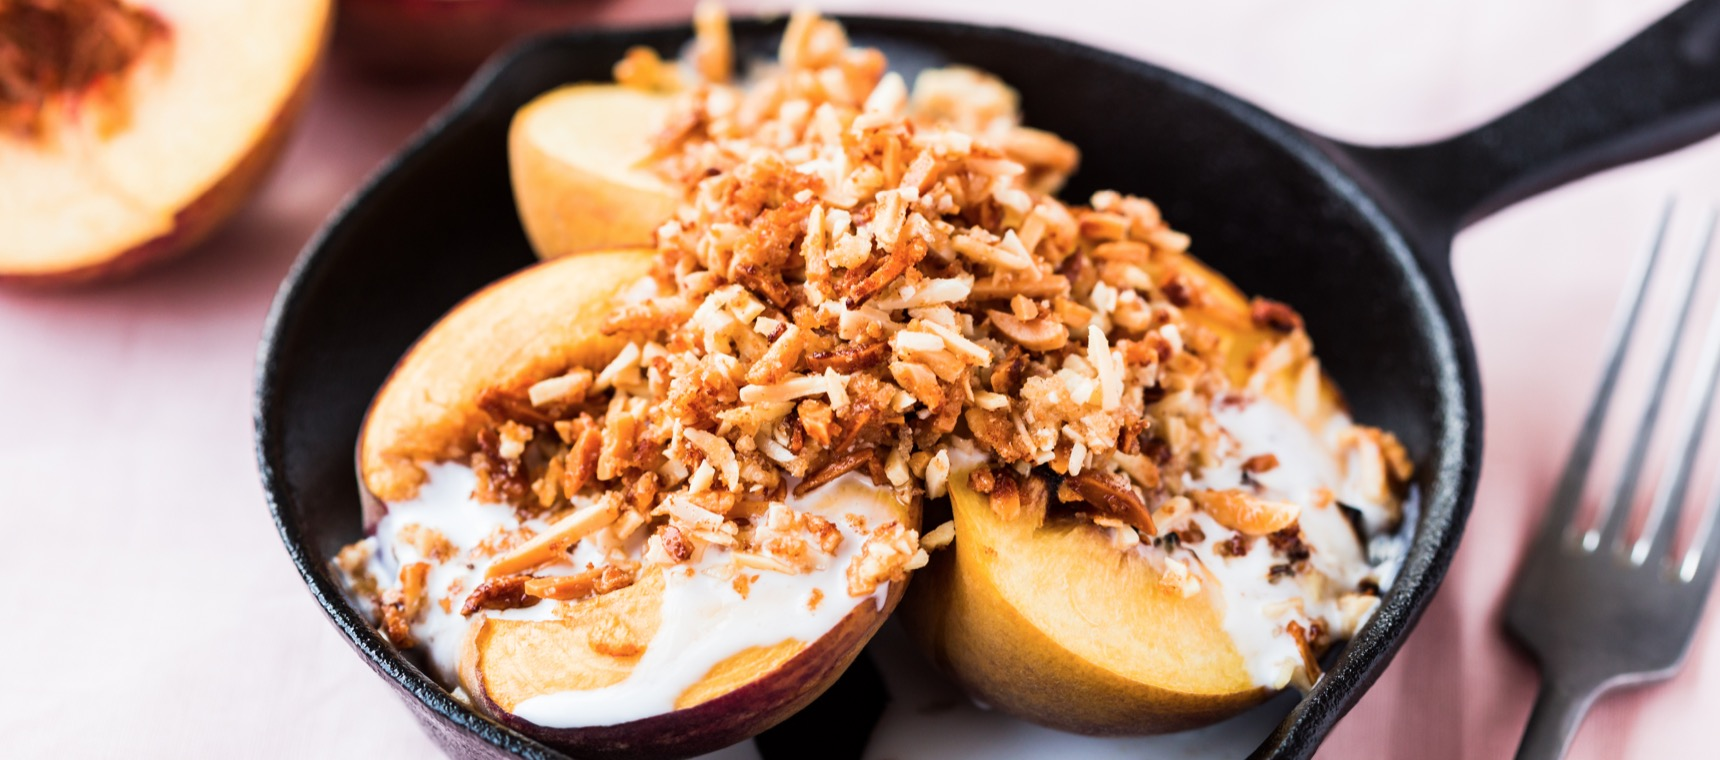 Grilled Peaches with Coconut Cream and Almond Crumble